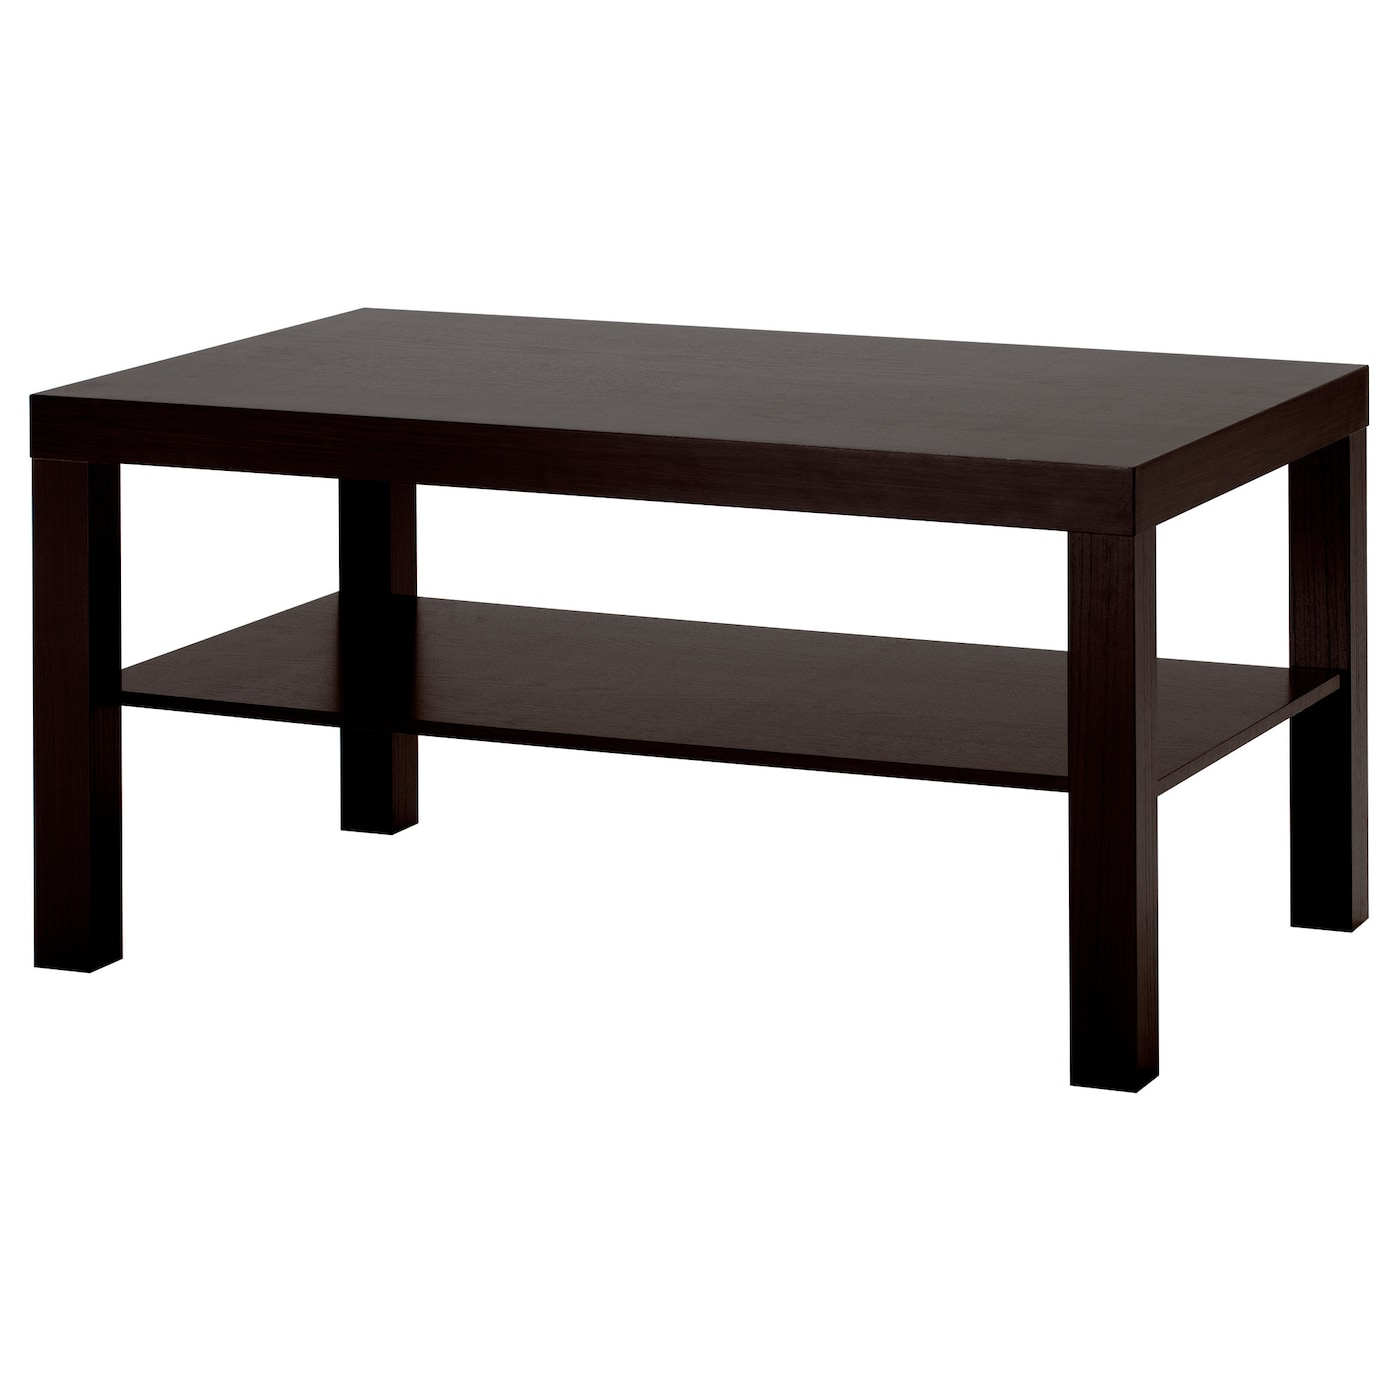 Lack table basse brun noir 90x55 cm ikea for Table de fusion ikea